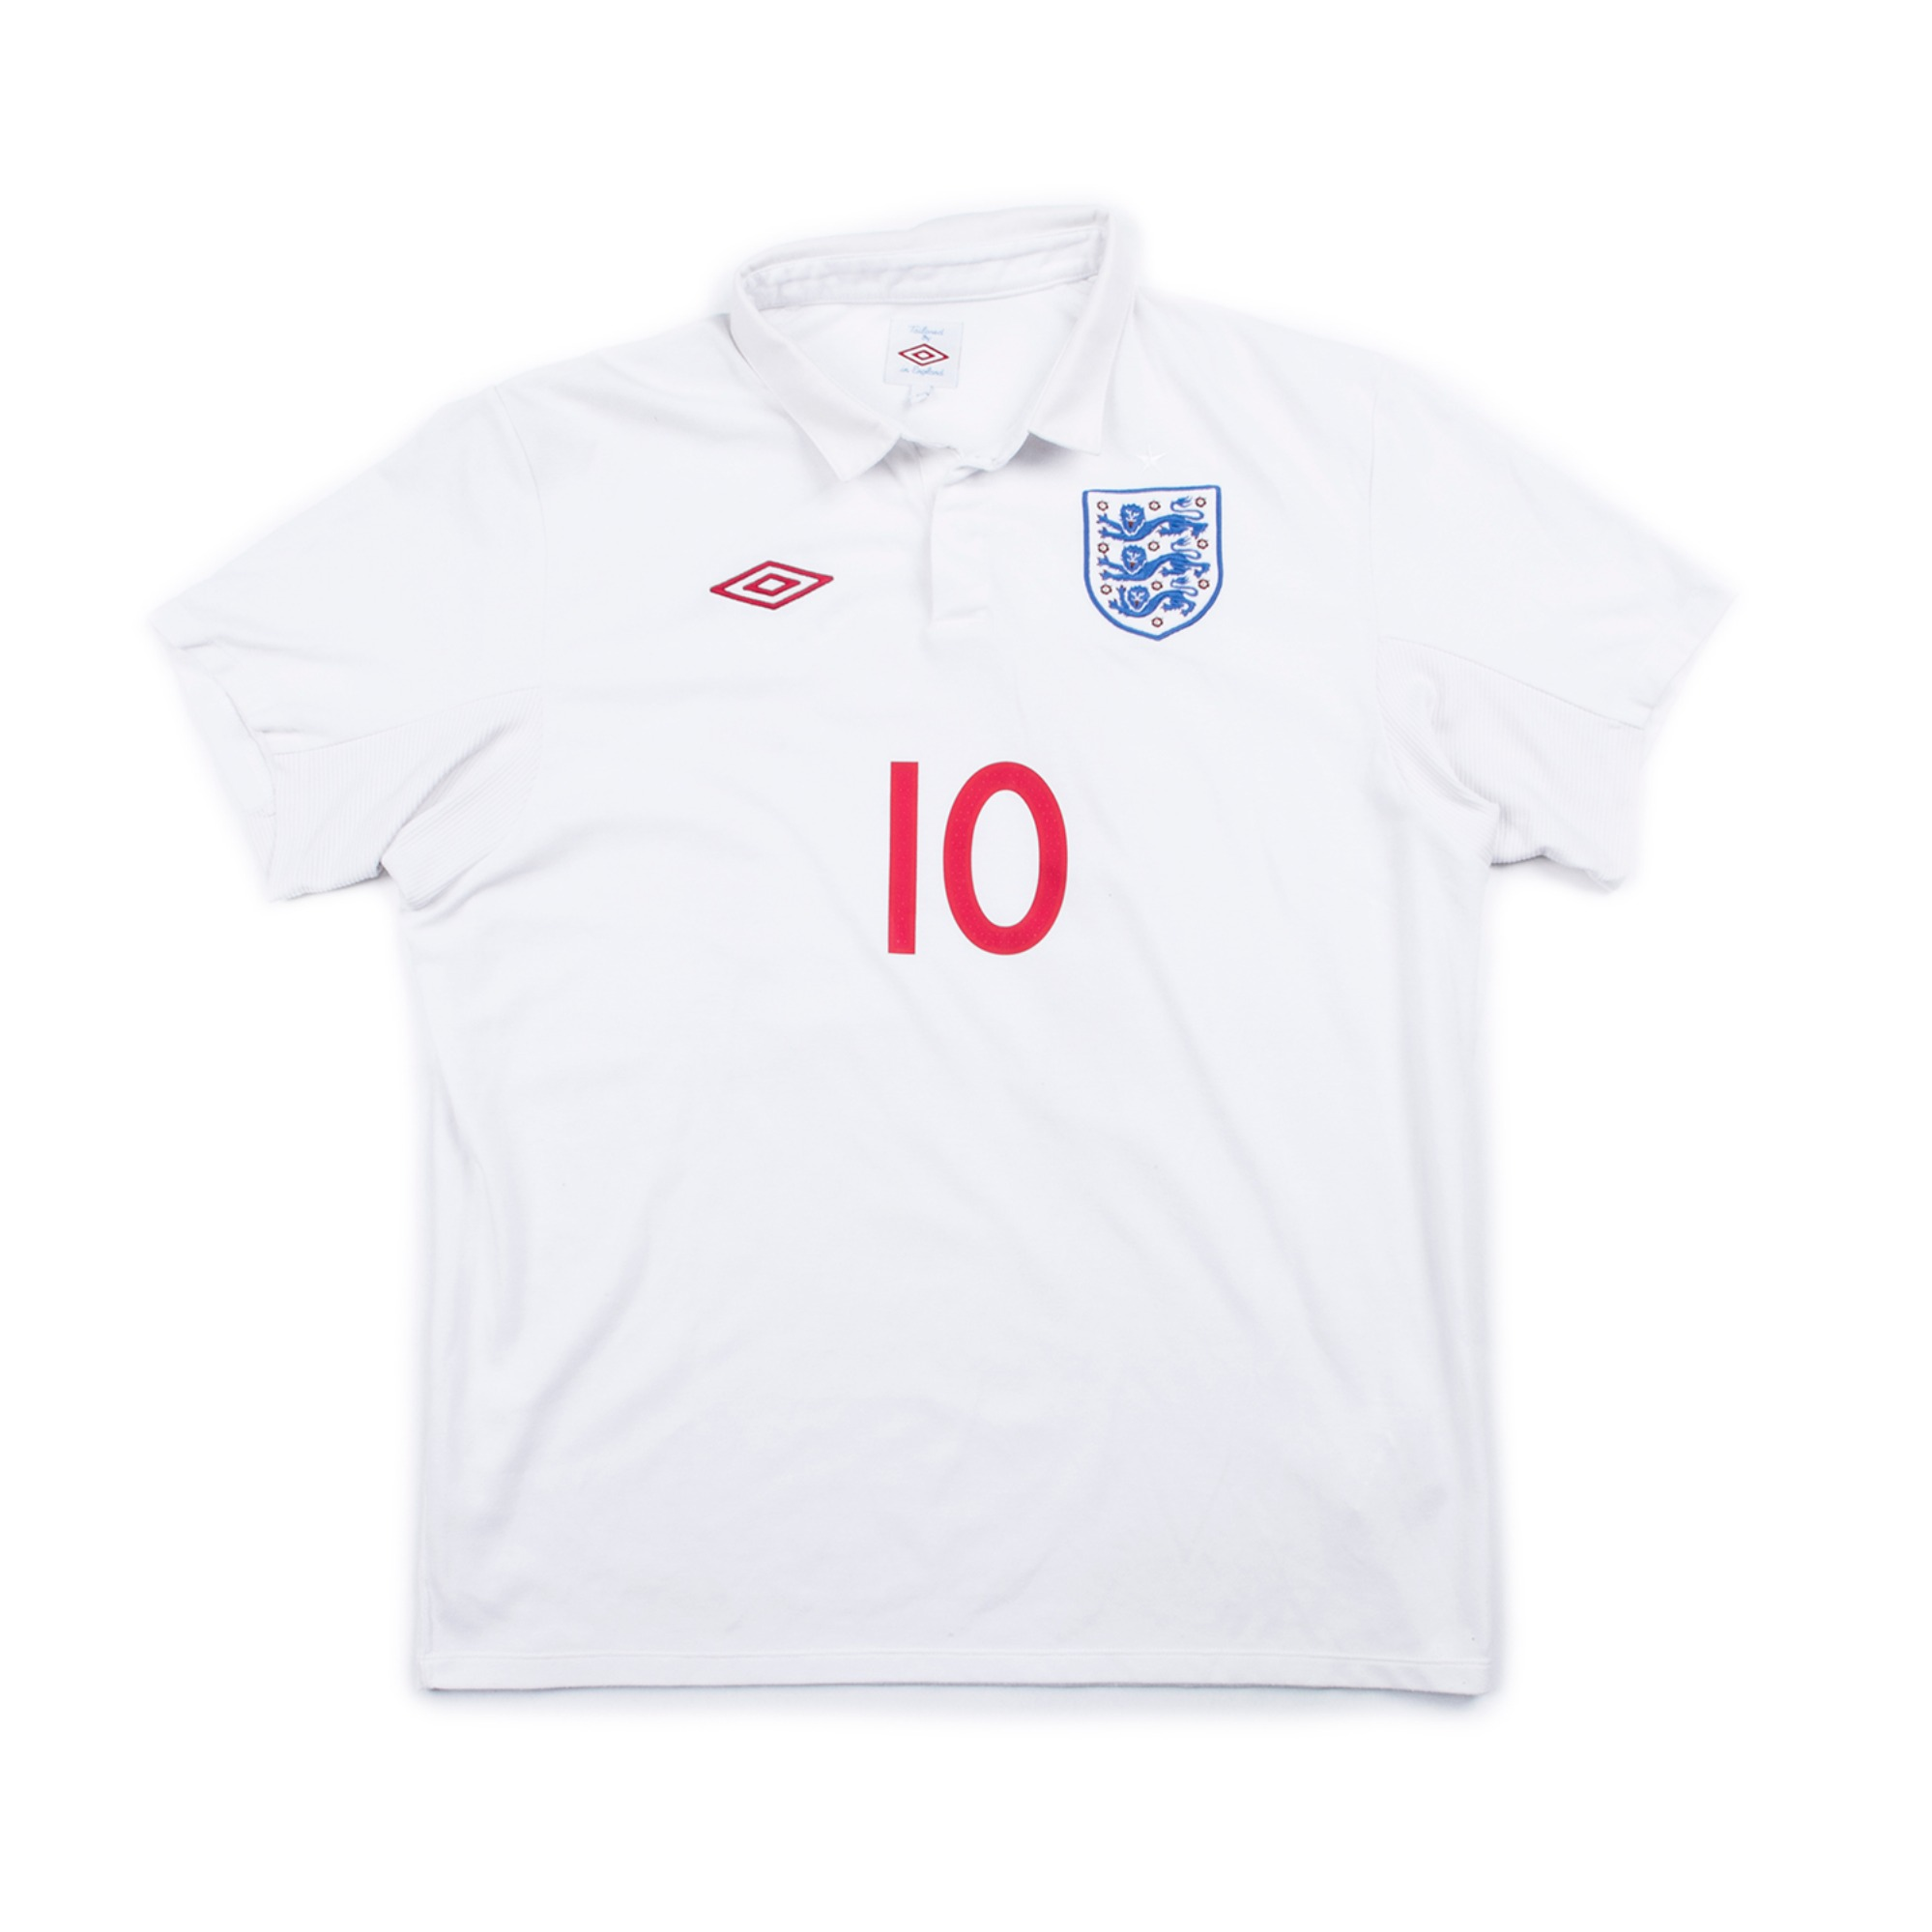 ENGLAND 2010-12 HOME JERSEY S/S #10 ROONEY